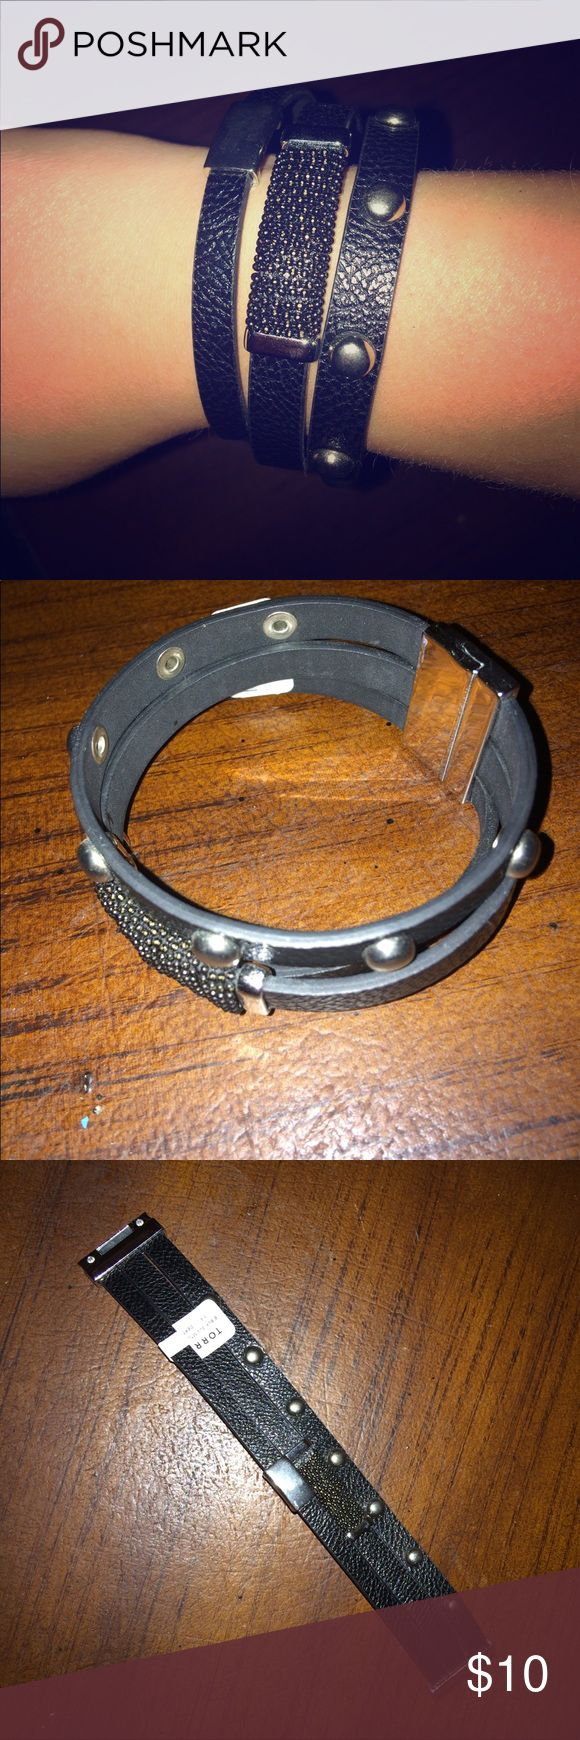 NWT Torrid Black/Silver Bracelet - size 3/4 New with tags, Torrid brand three strand wrap style bracelet with magnetic clasp.  Tag says size 3/4 so best for larger wrists.  No damage or signs of wear.  Ships from smoke free home!  👉🏻 Add to bundle with any single clothing item and this becomes a $5 add on!!! torrid Jewelry Bracelets